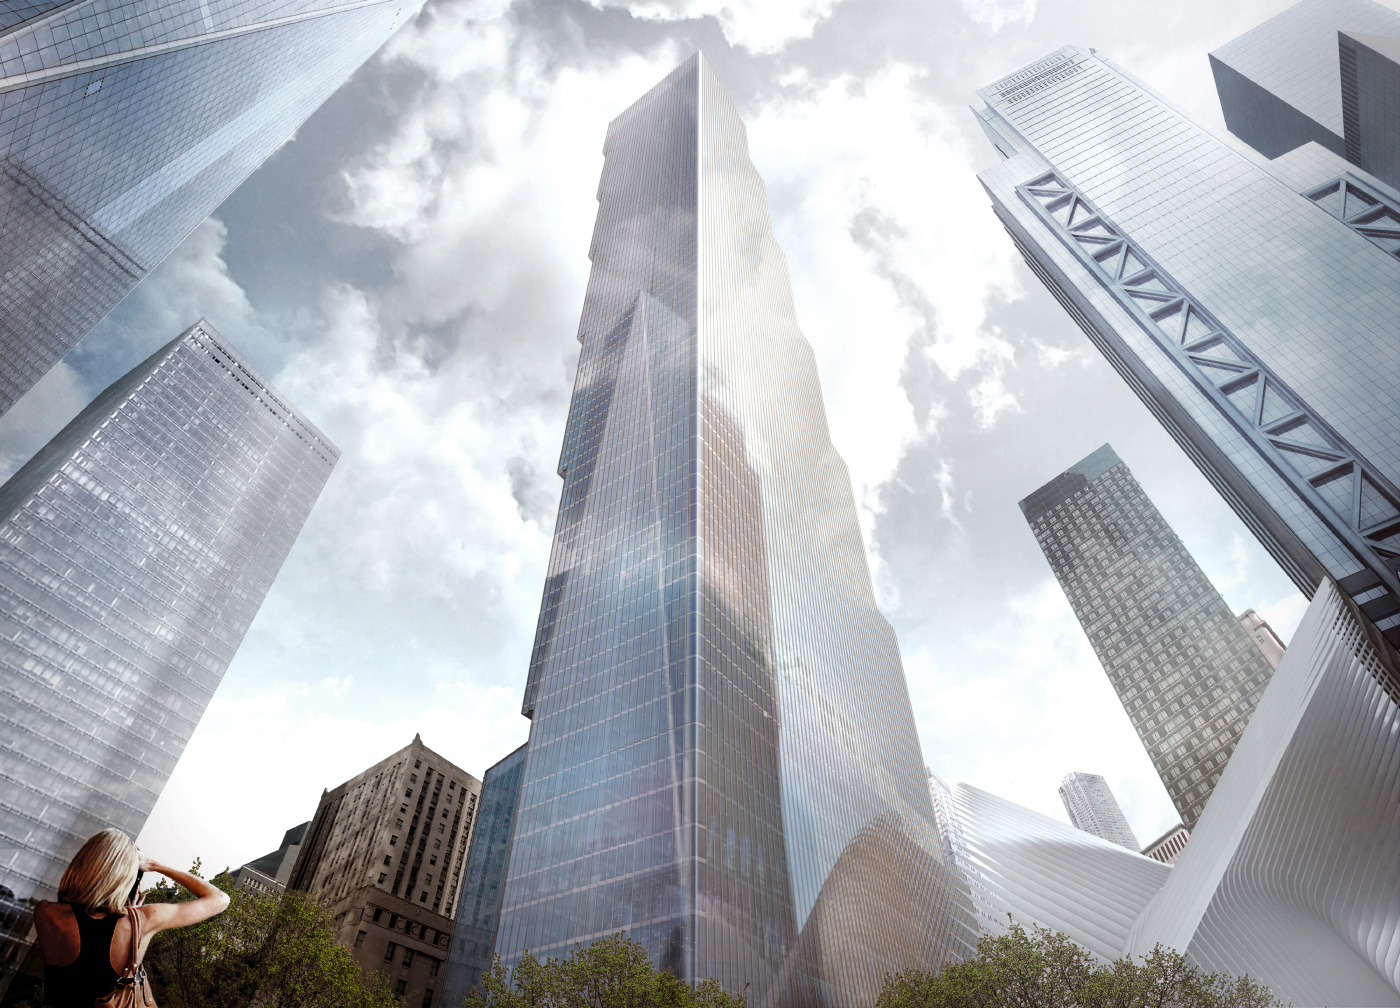 Rendering of a boxy glass tower at 2 world trade center